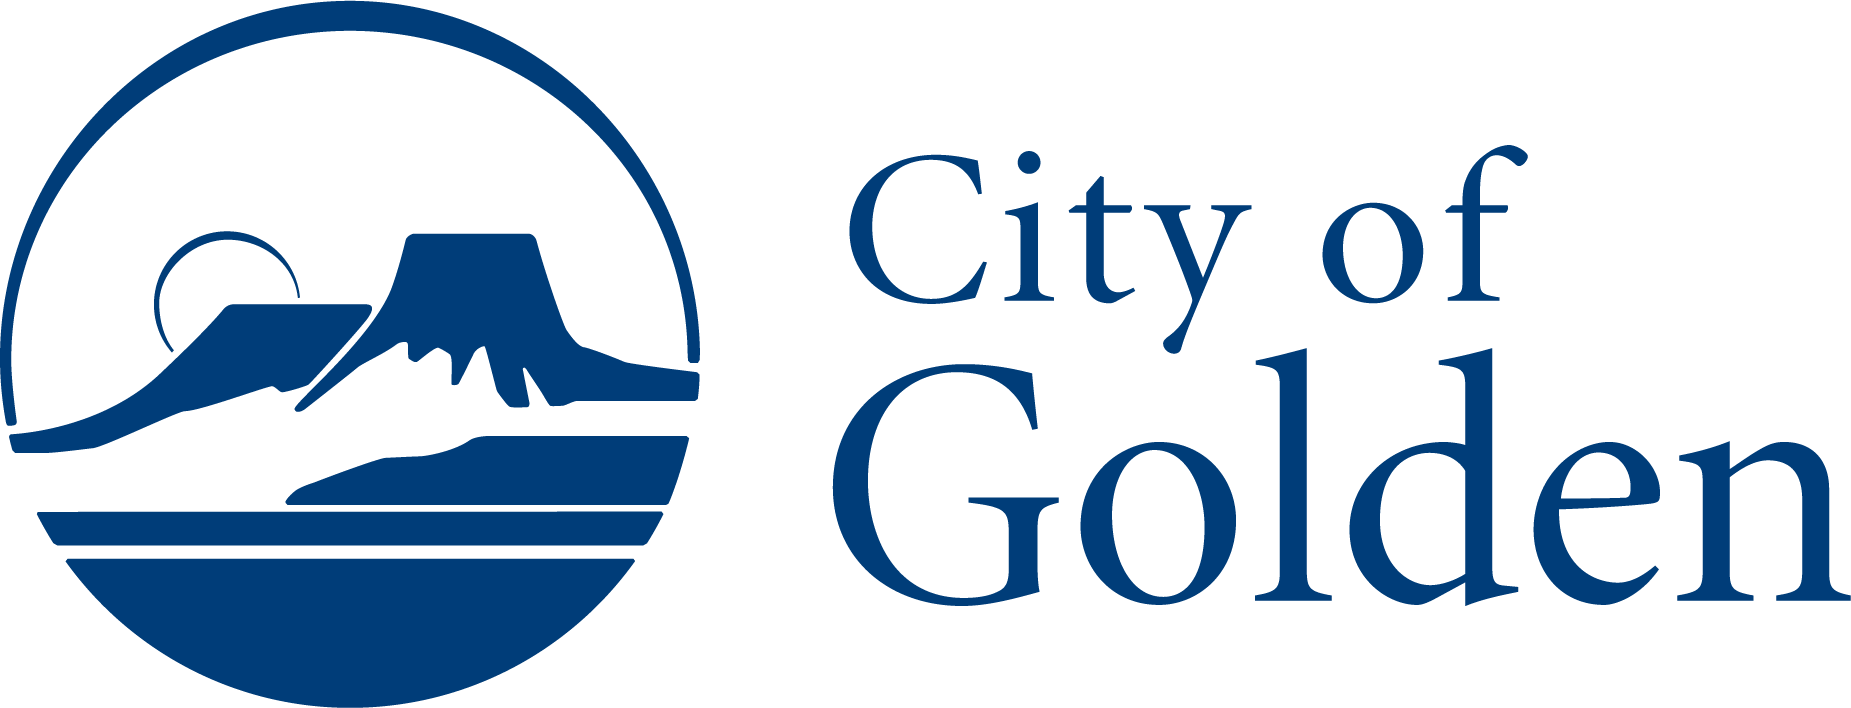 City of Golden Staff